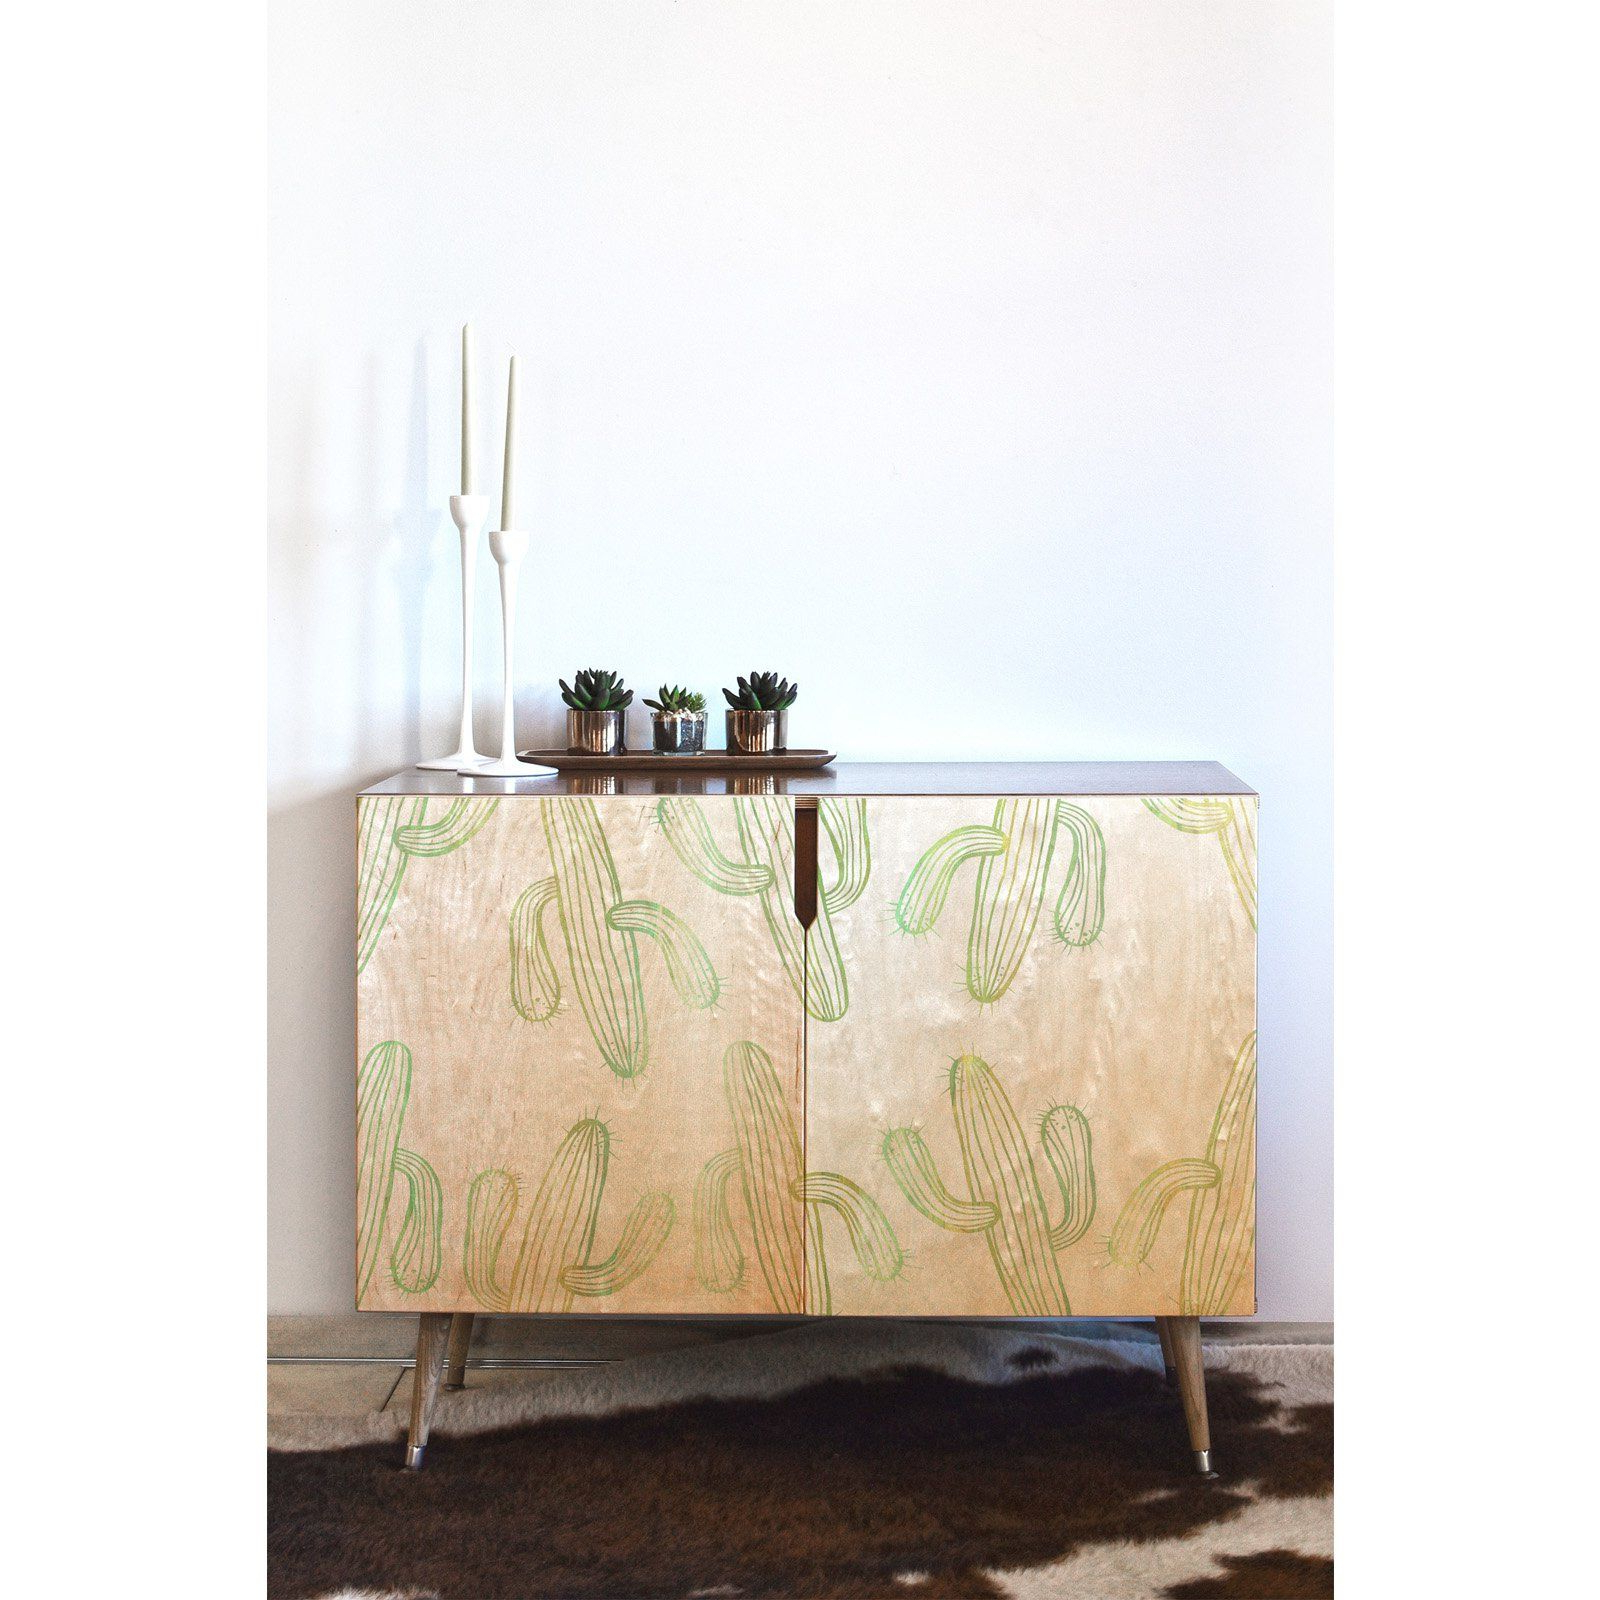 Deny Designs Sophia Buddenhagen Cactus Party Credenza Regarding Geometric Shapes Credenzas (View 9 of 20)